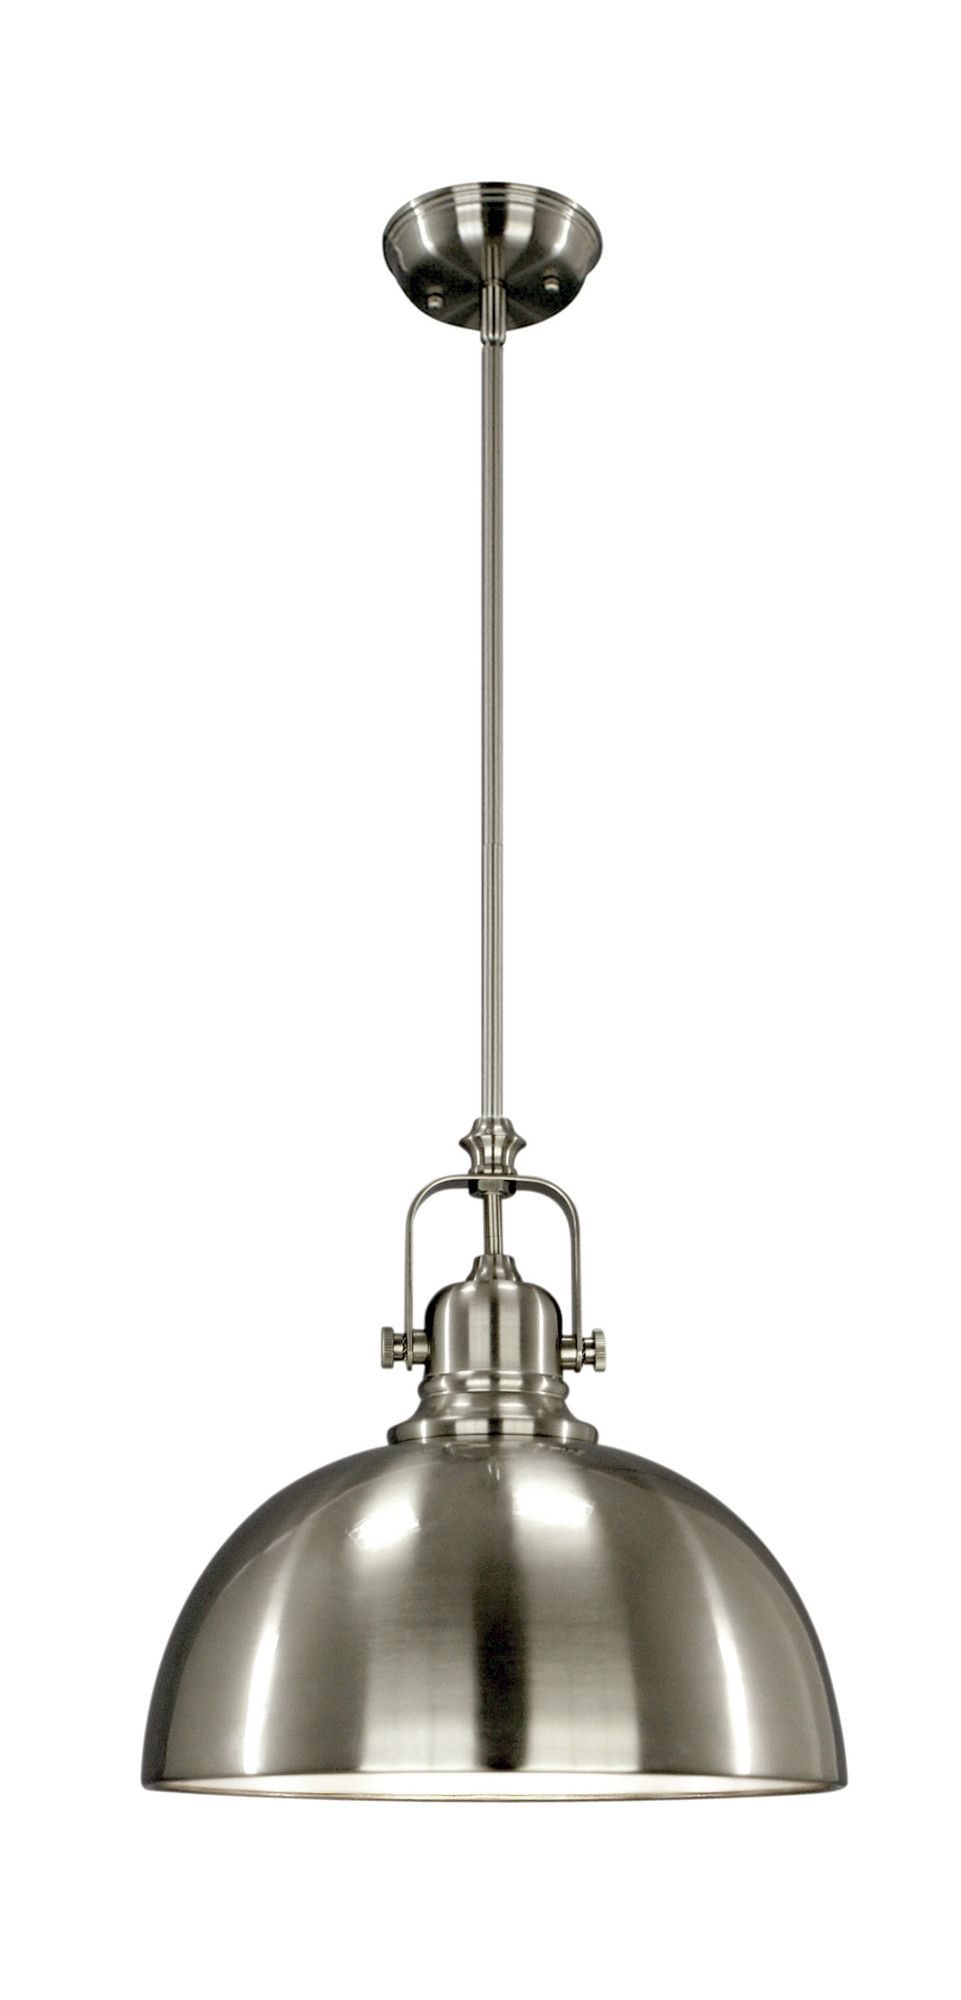 Canarm Ipl222b01bn Polo 1 Light Mini Pendant With Brushed Nickel